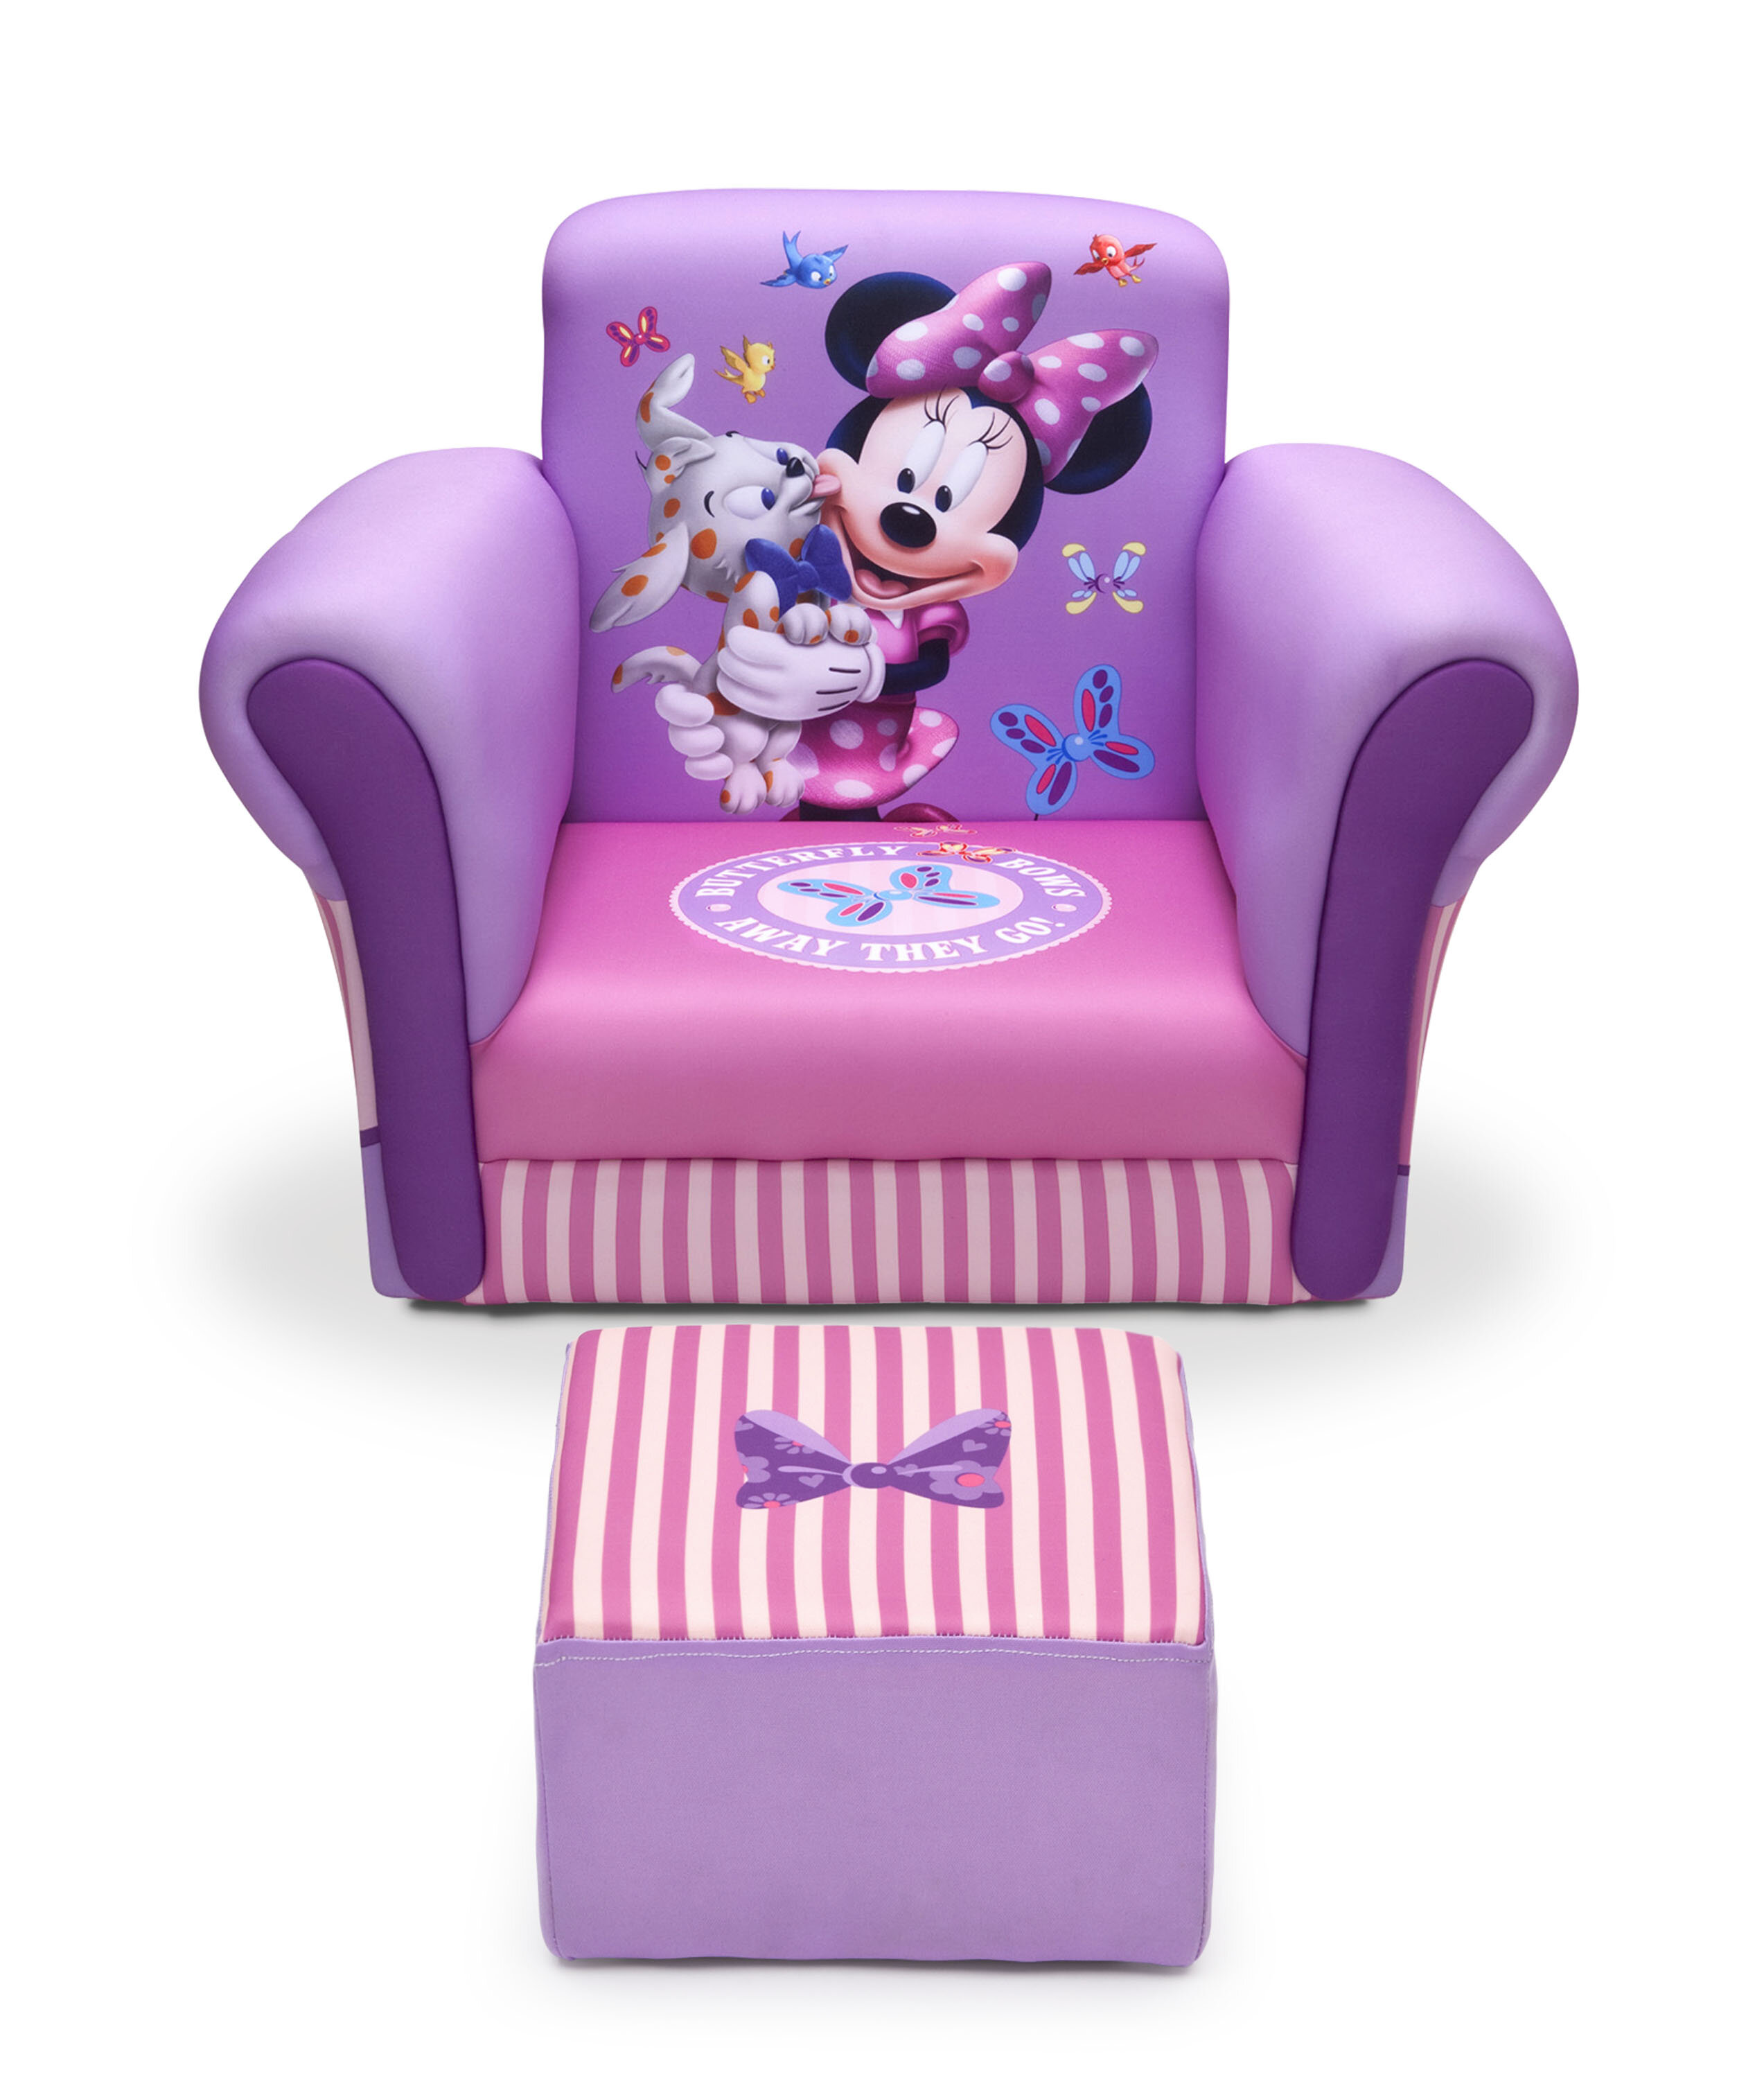 Pleasant Minnie Mouse Kids Chair And Ottoman Pdpeps Interior Chair Design Pdpepsorg